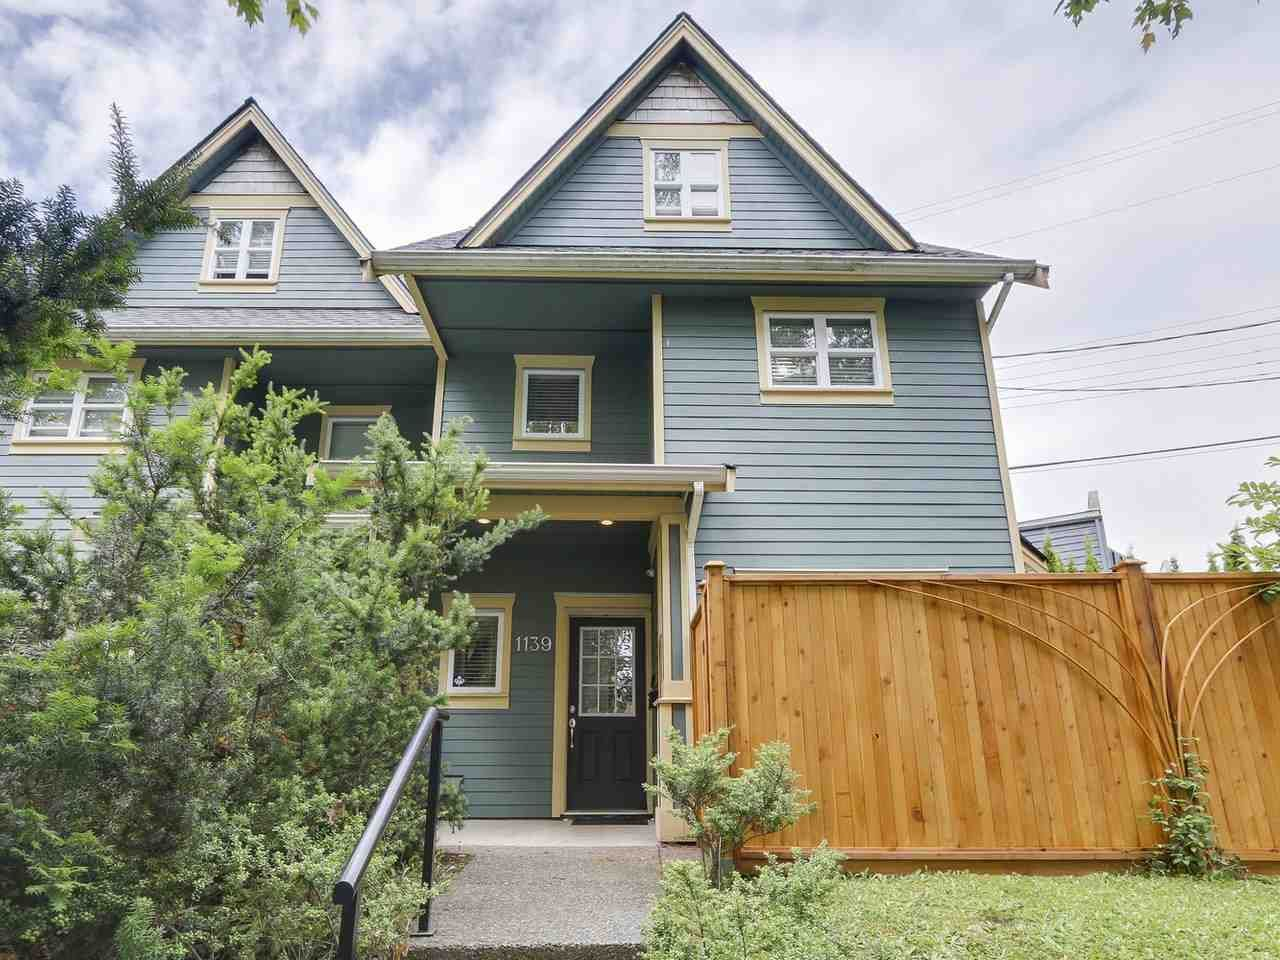 Main Photo: 1139 E 21ST Avenue in Vancouver: Knight 1/2 Duplex for sale (Vancouver East)  : MLS®# R2180419